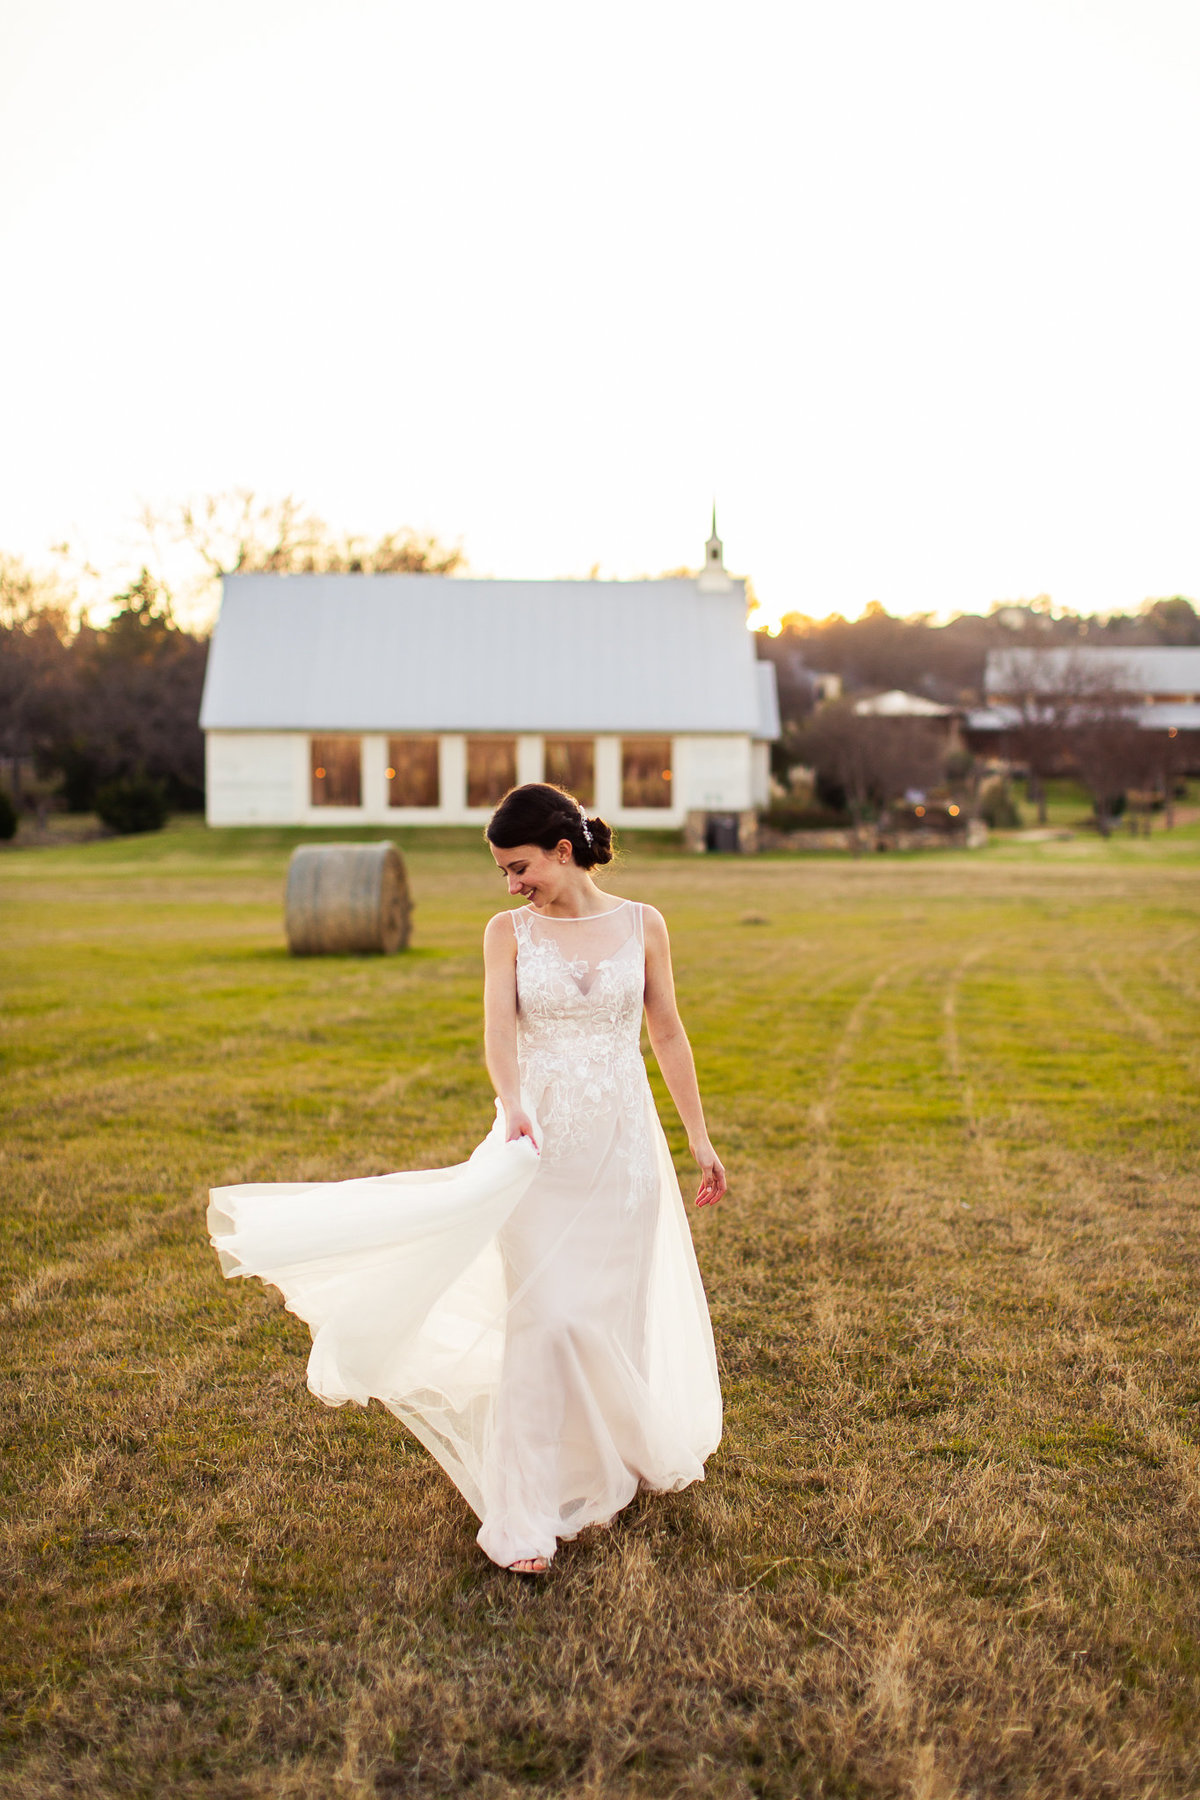 madeline_c_photography_dallas_wedding_photographer_megan_connor-119